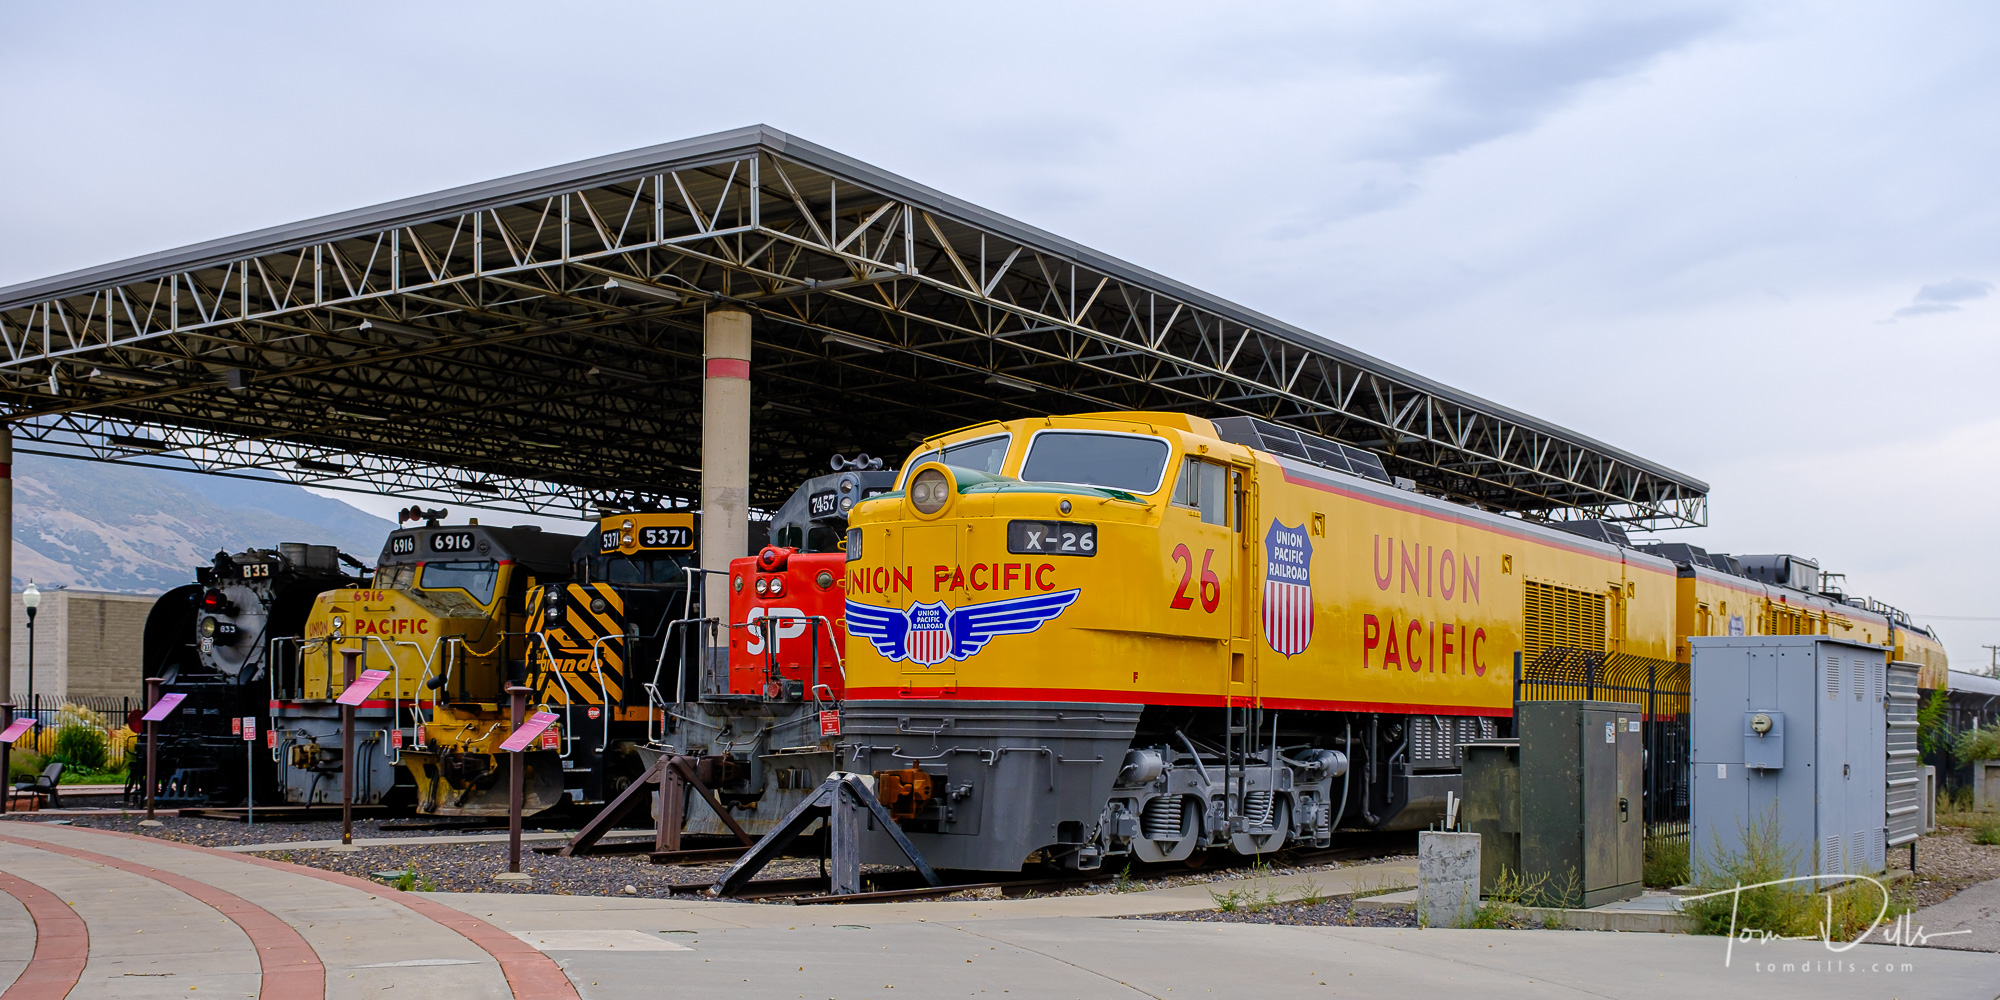 Retired Union Pacific locomotives on display at Union Station train depot and museum in downtown Ogden, Utah